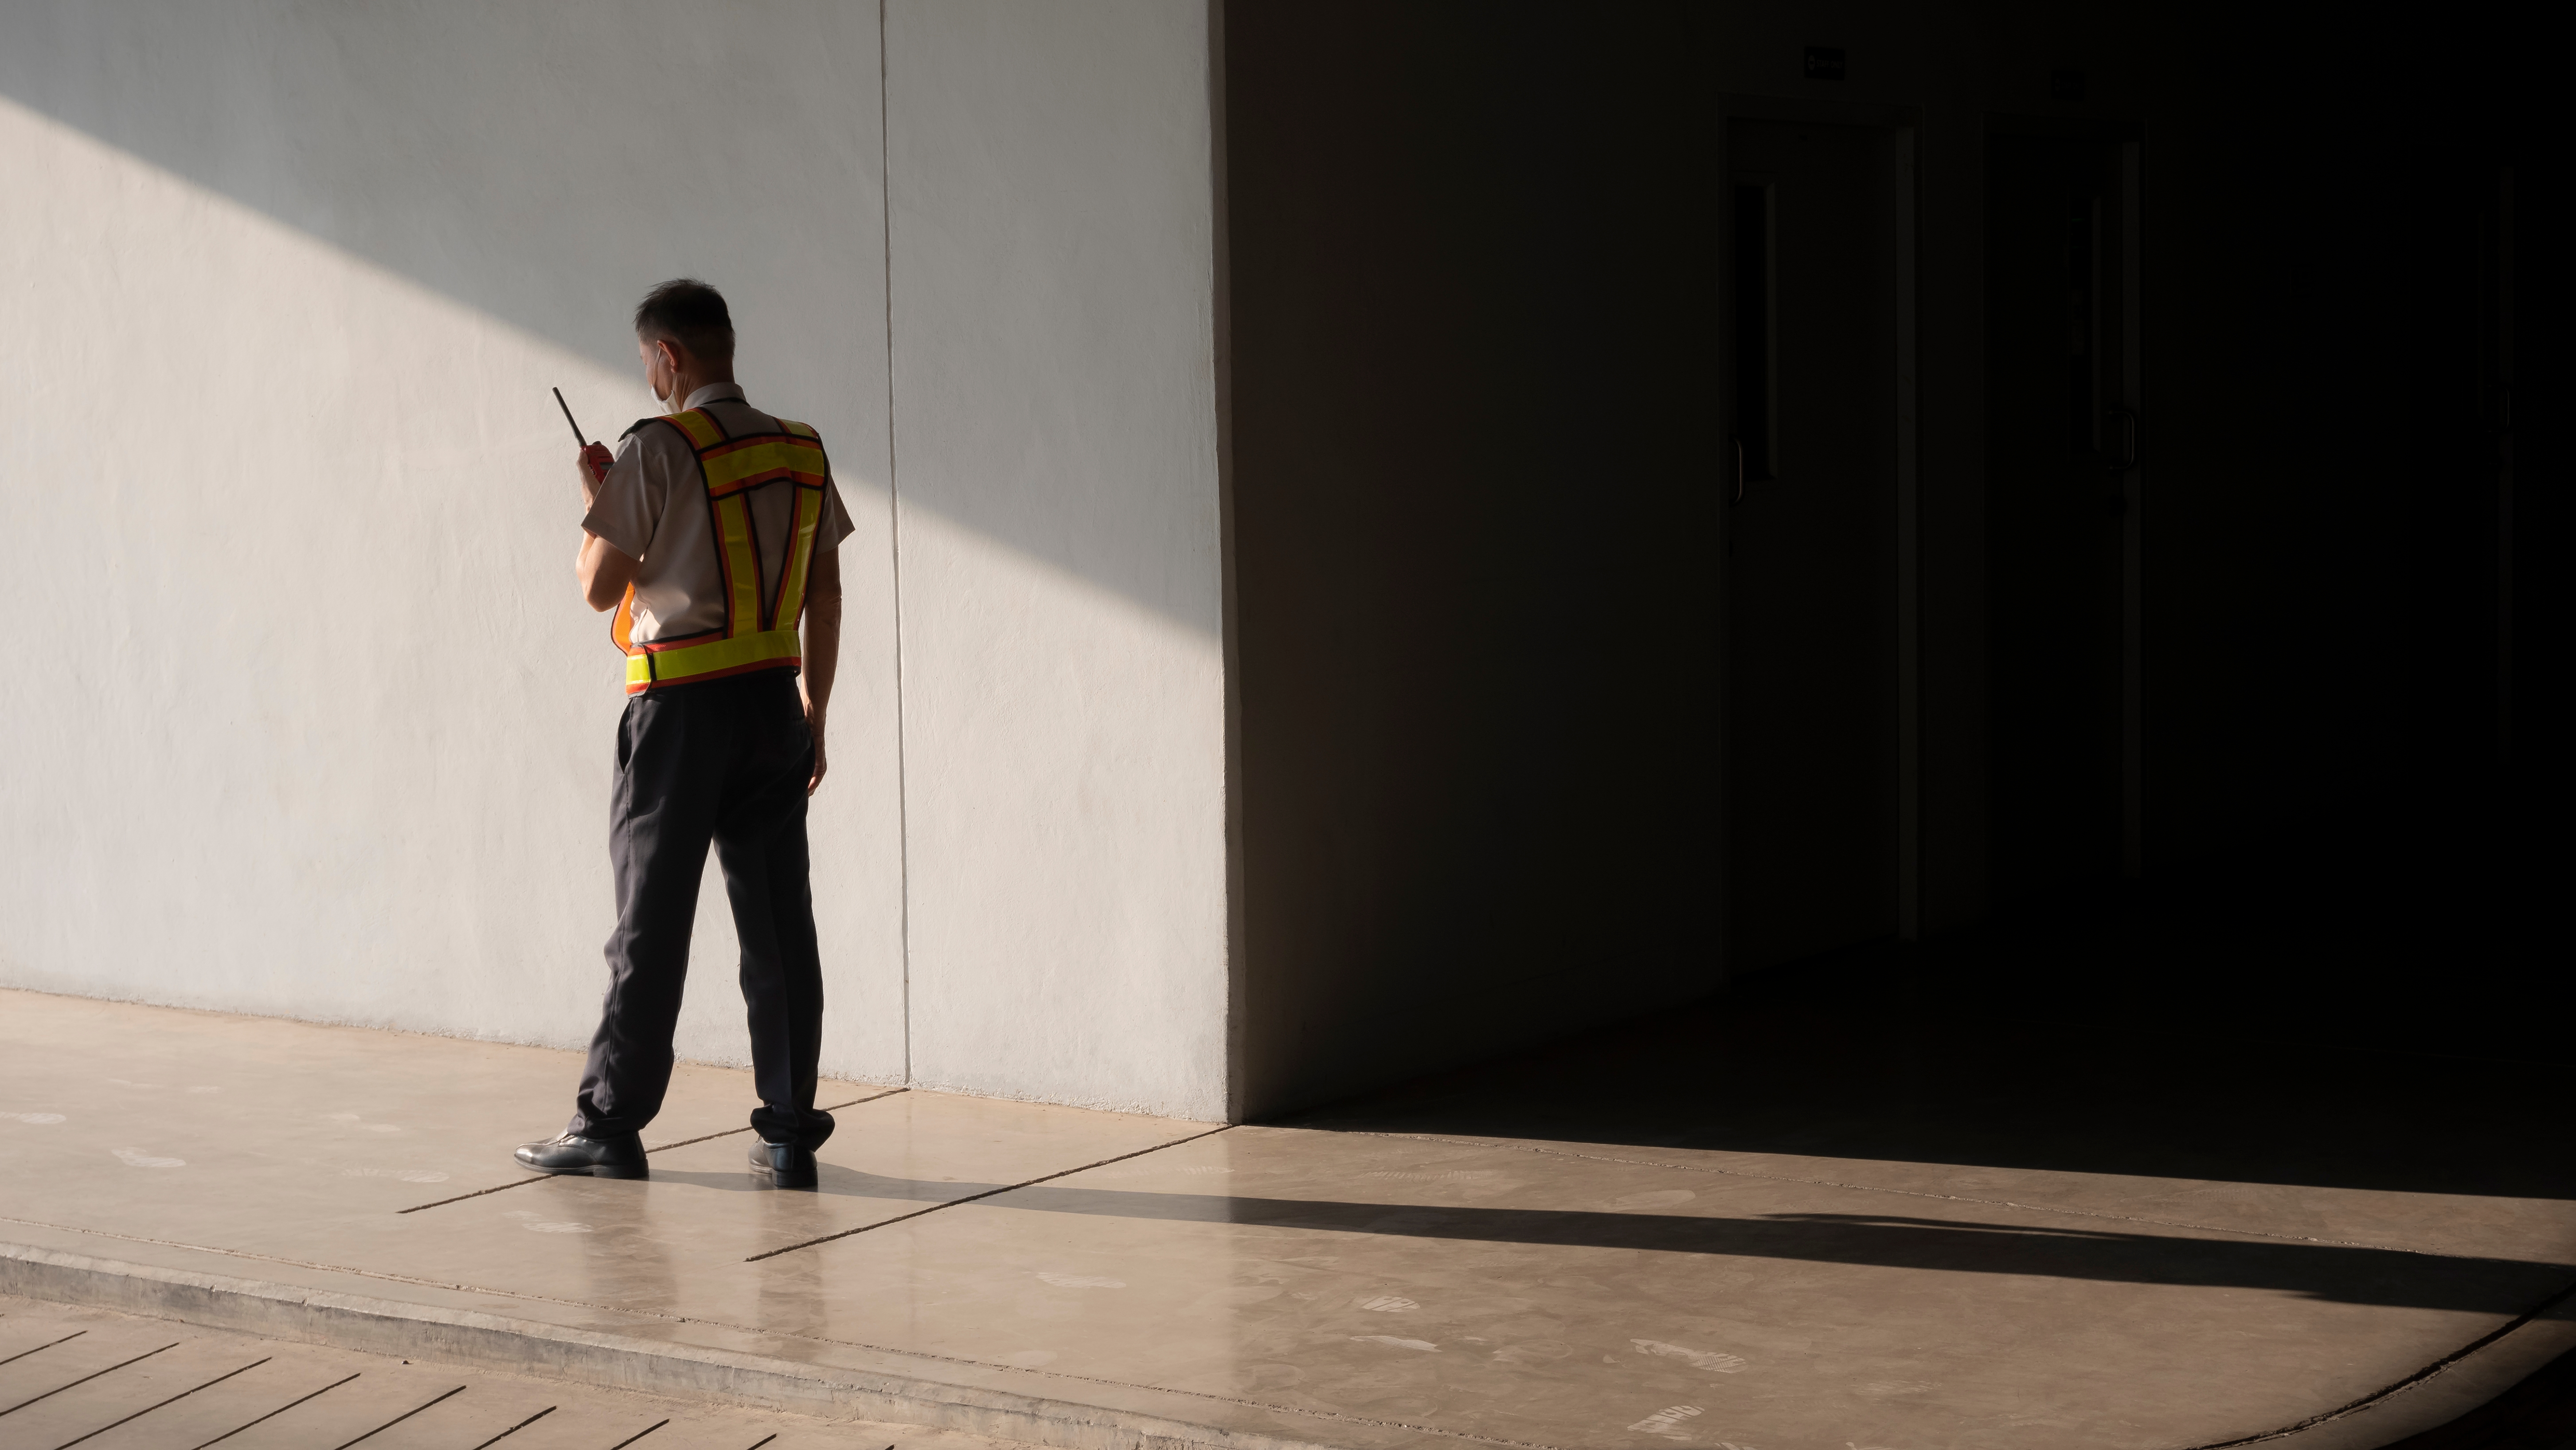 asian-security-guard-in-safety-vest-walking-on-side